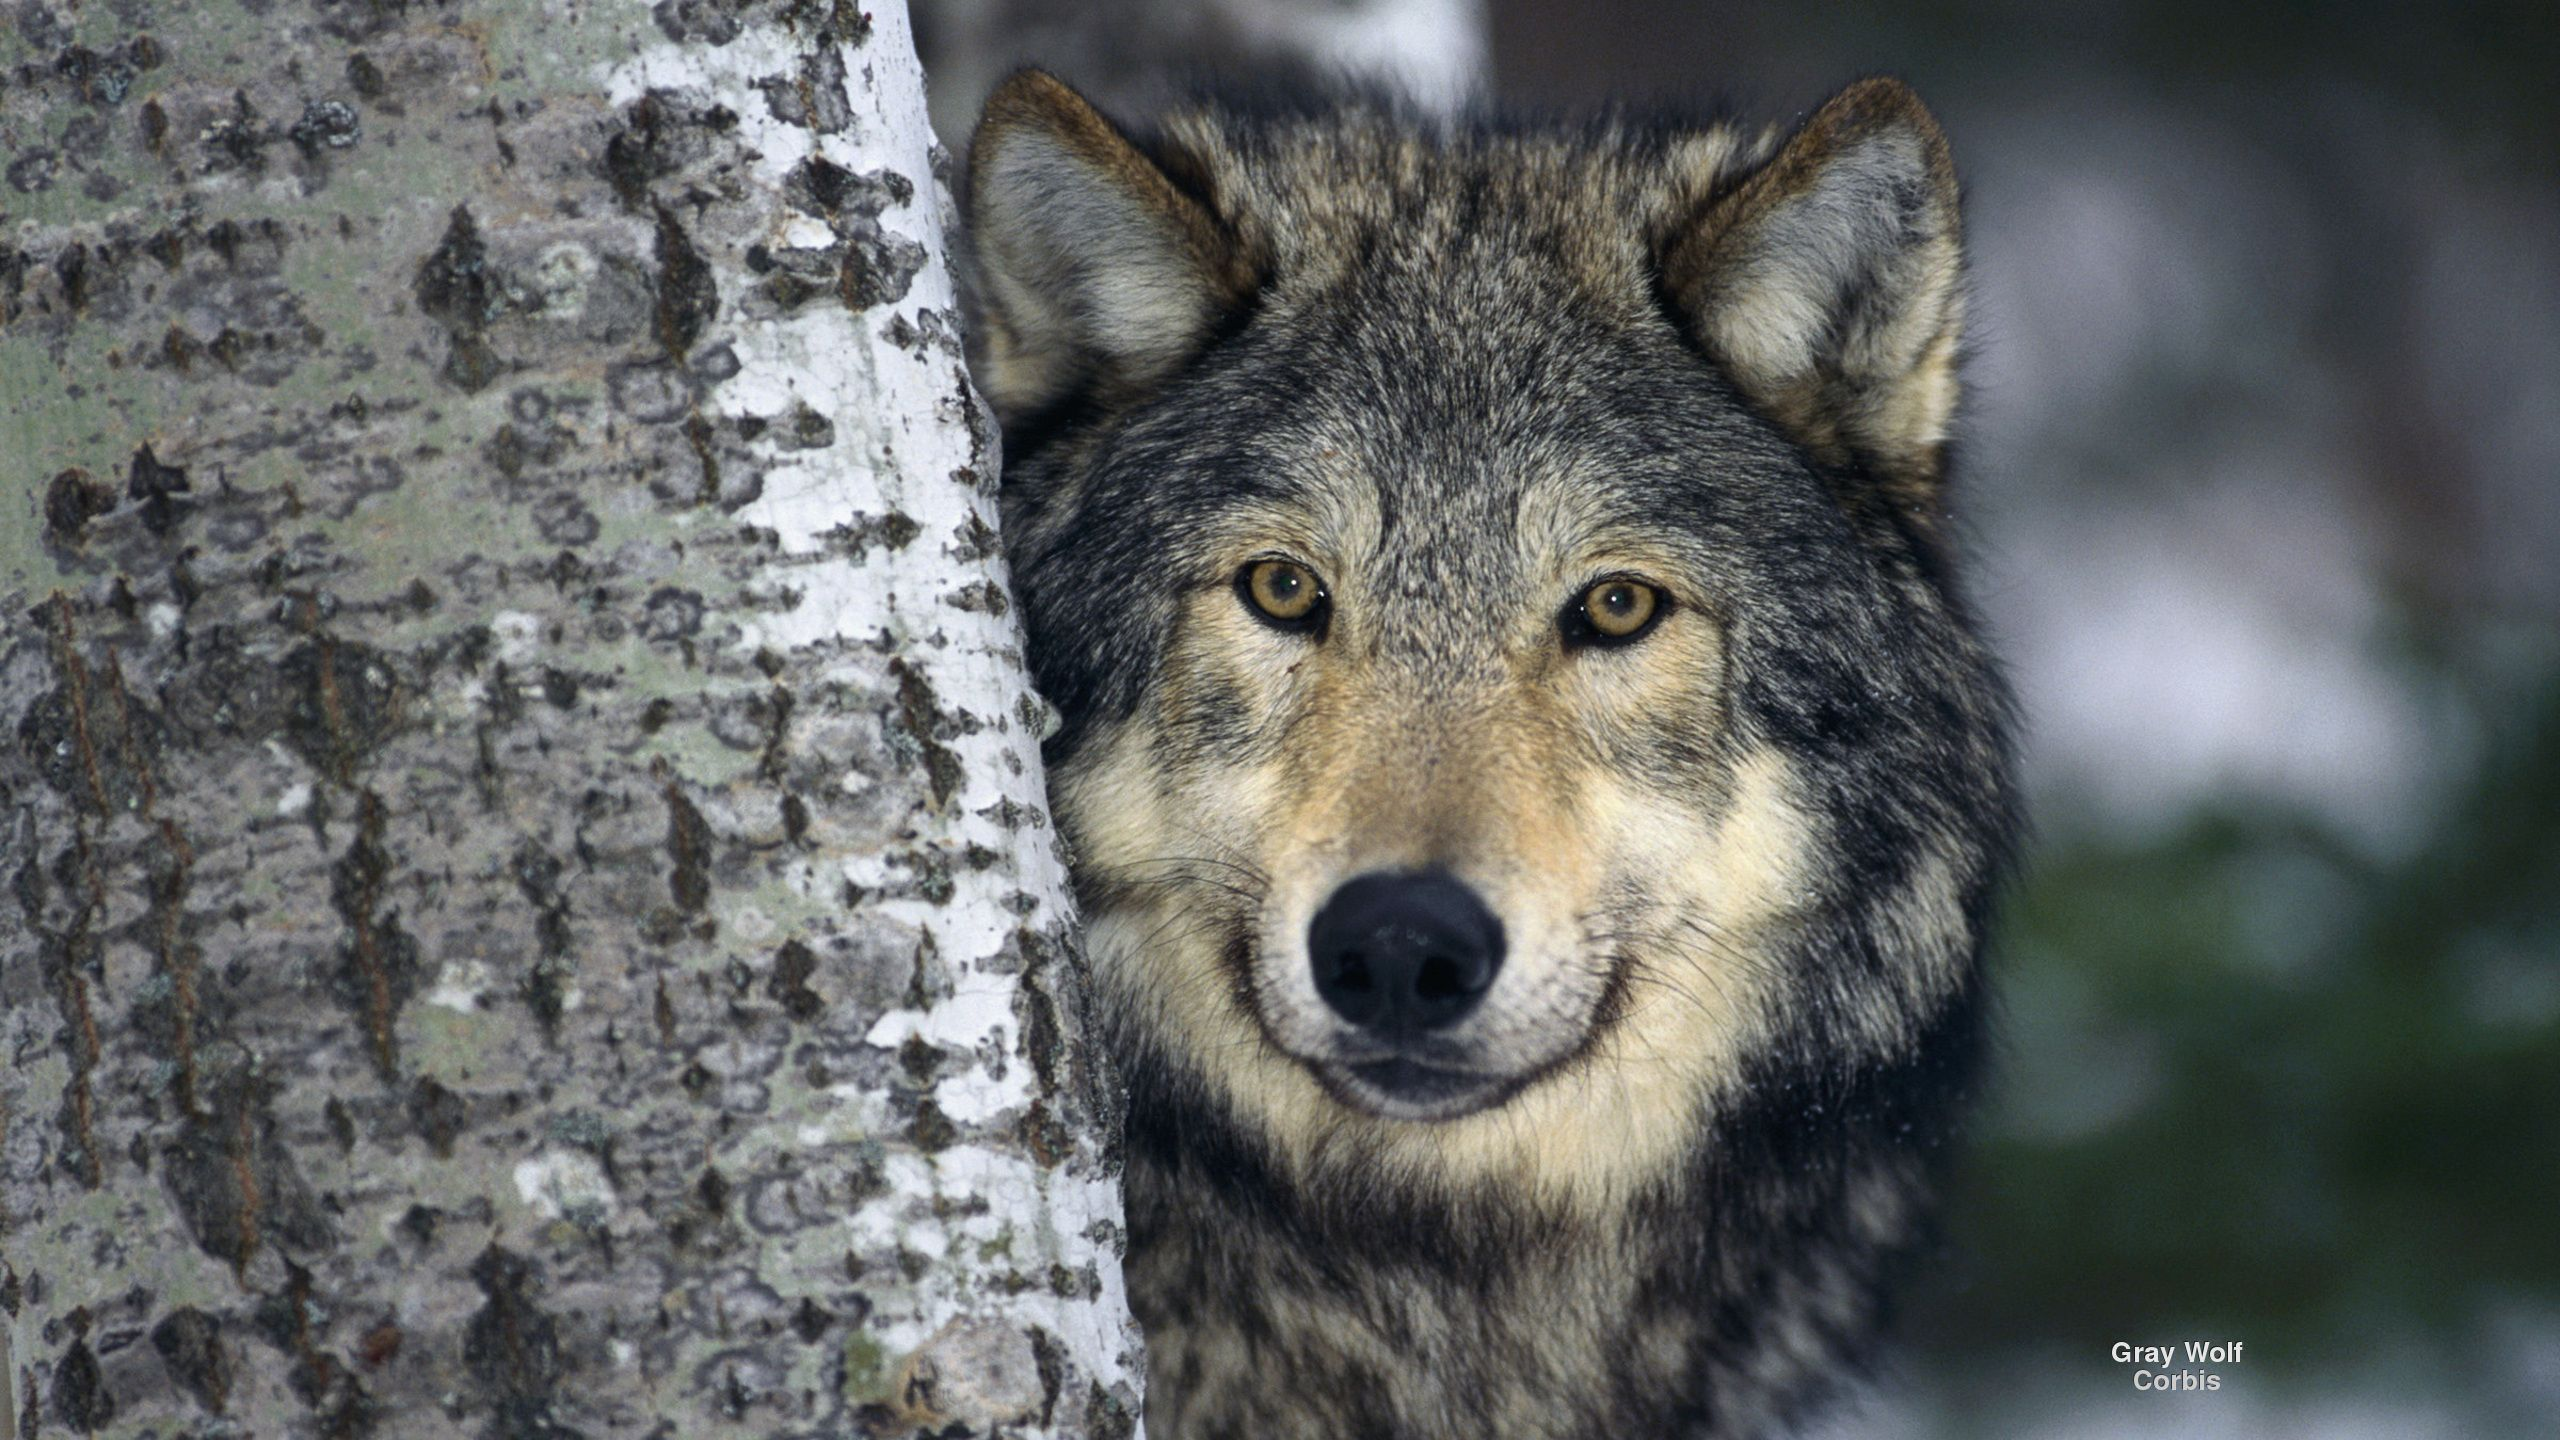 Popular Wallpaper Angry Gray Wolf - 3f1d21988d2f60c60008af183a97f1cc  Photograph_664014      .jpg